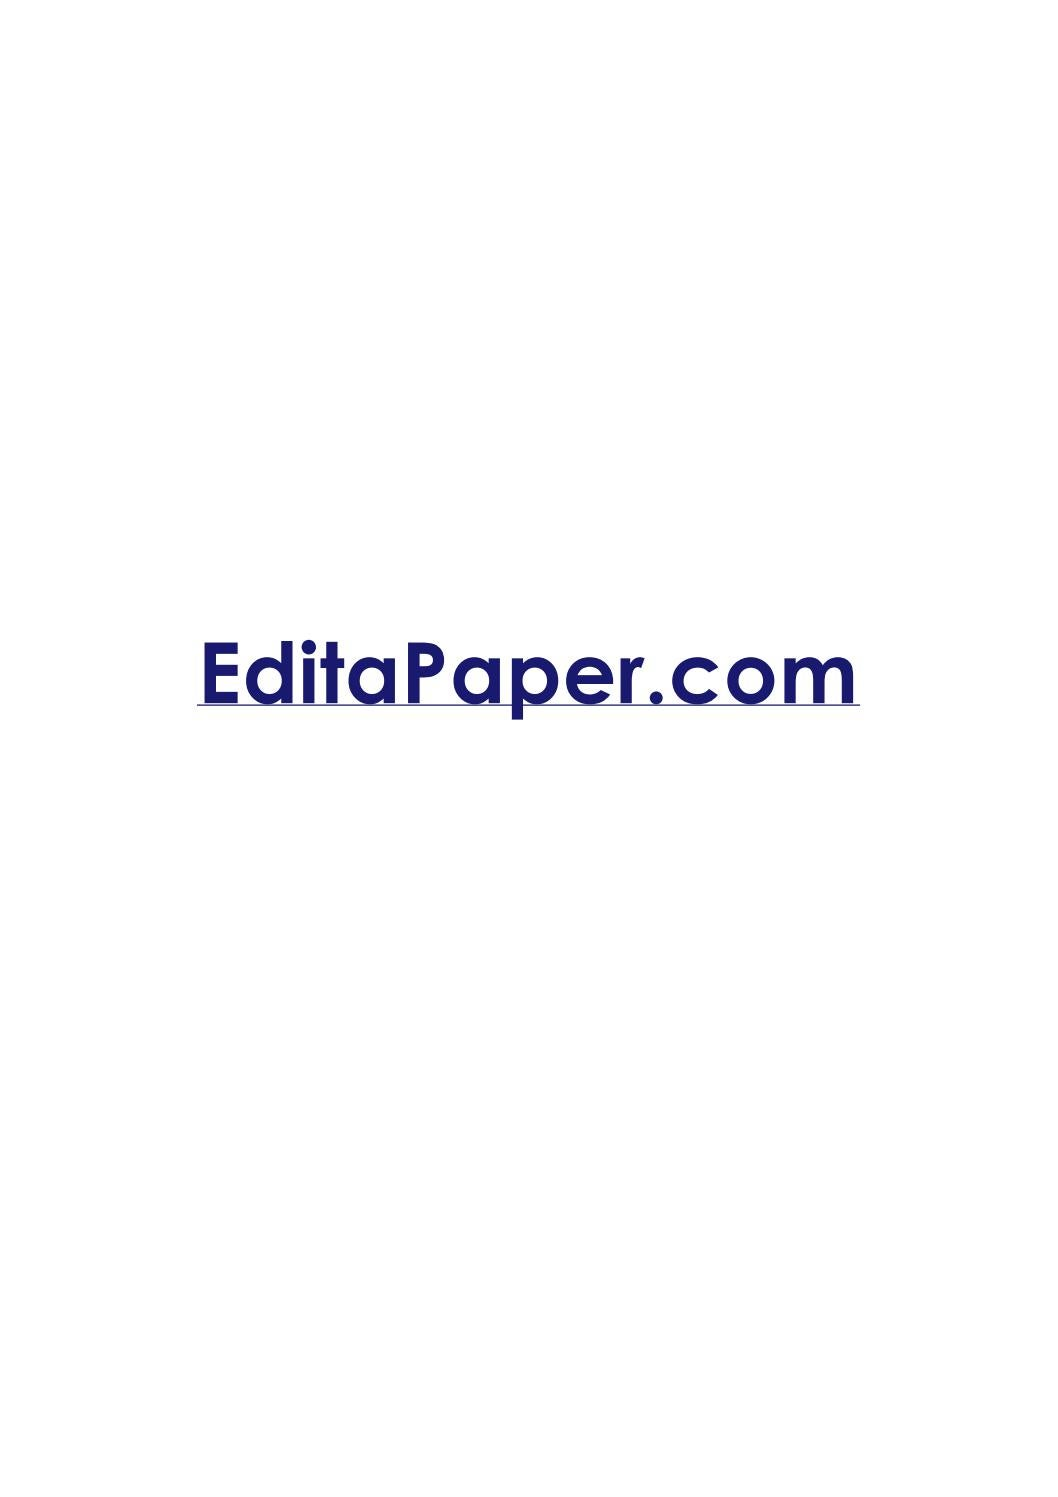 Thesis title help business cards online